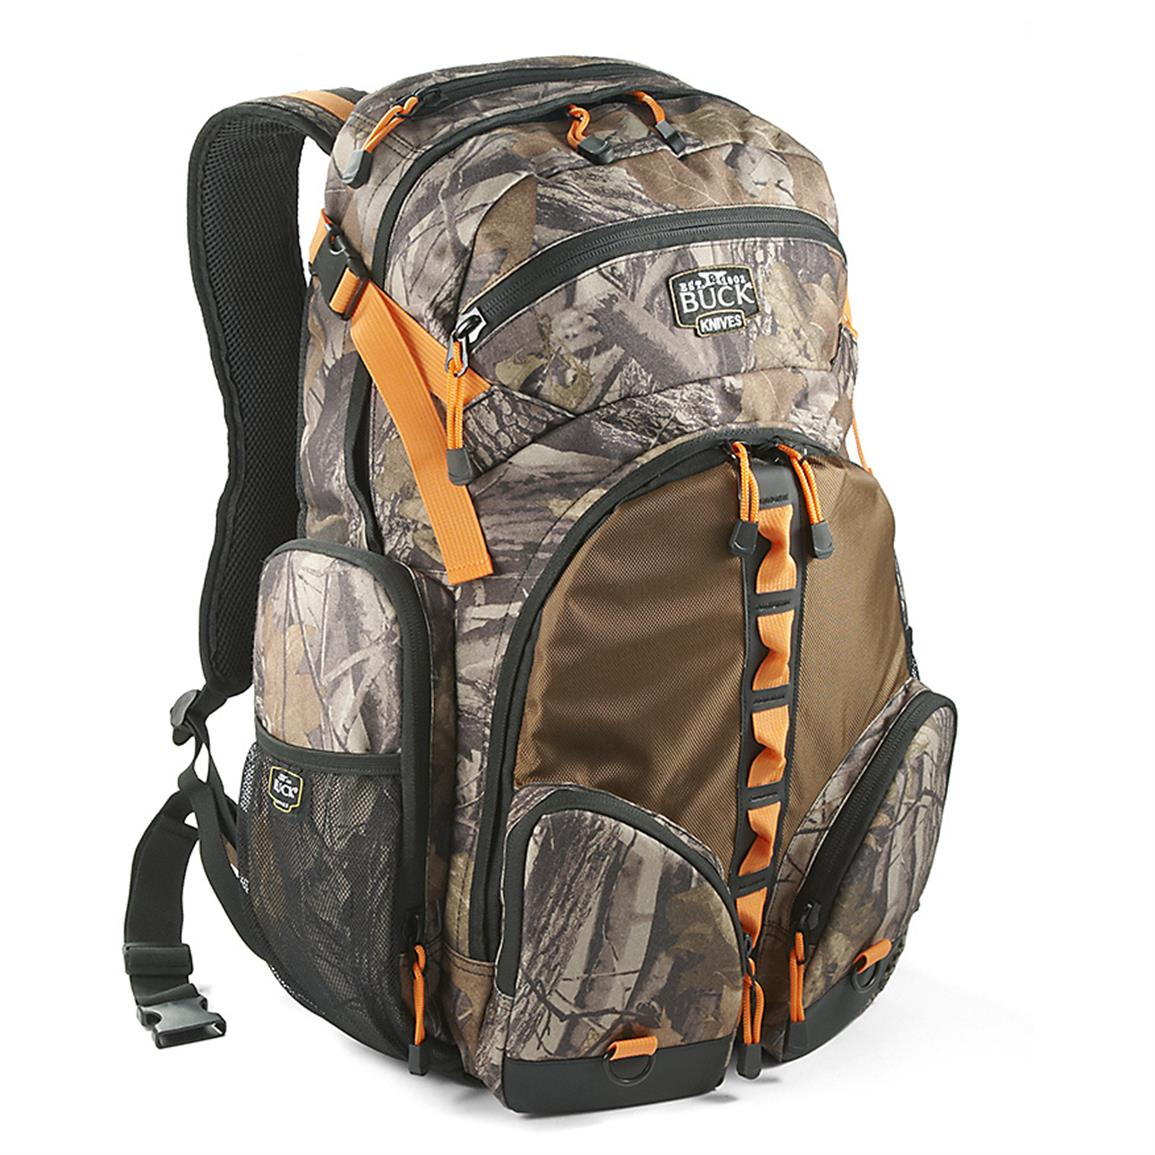 Buck Stealth Backpack